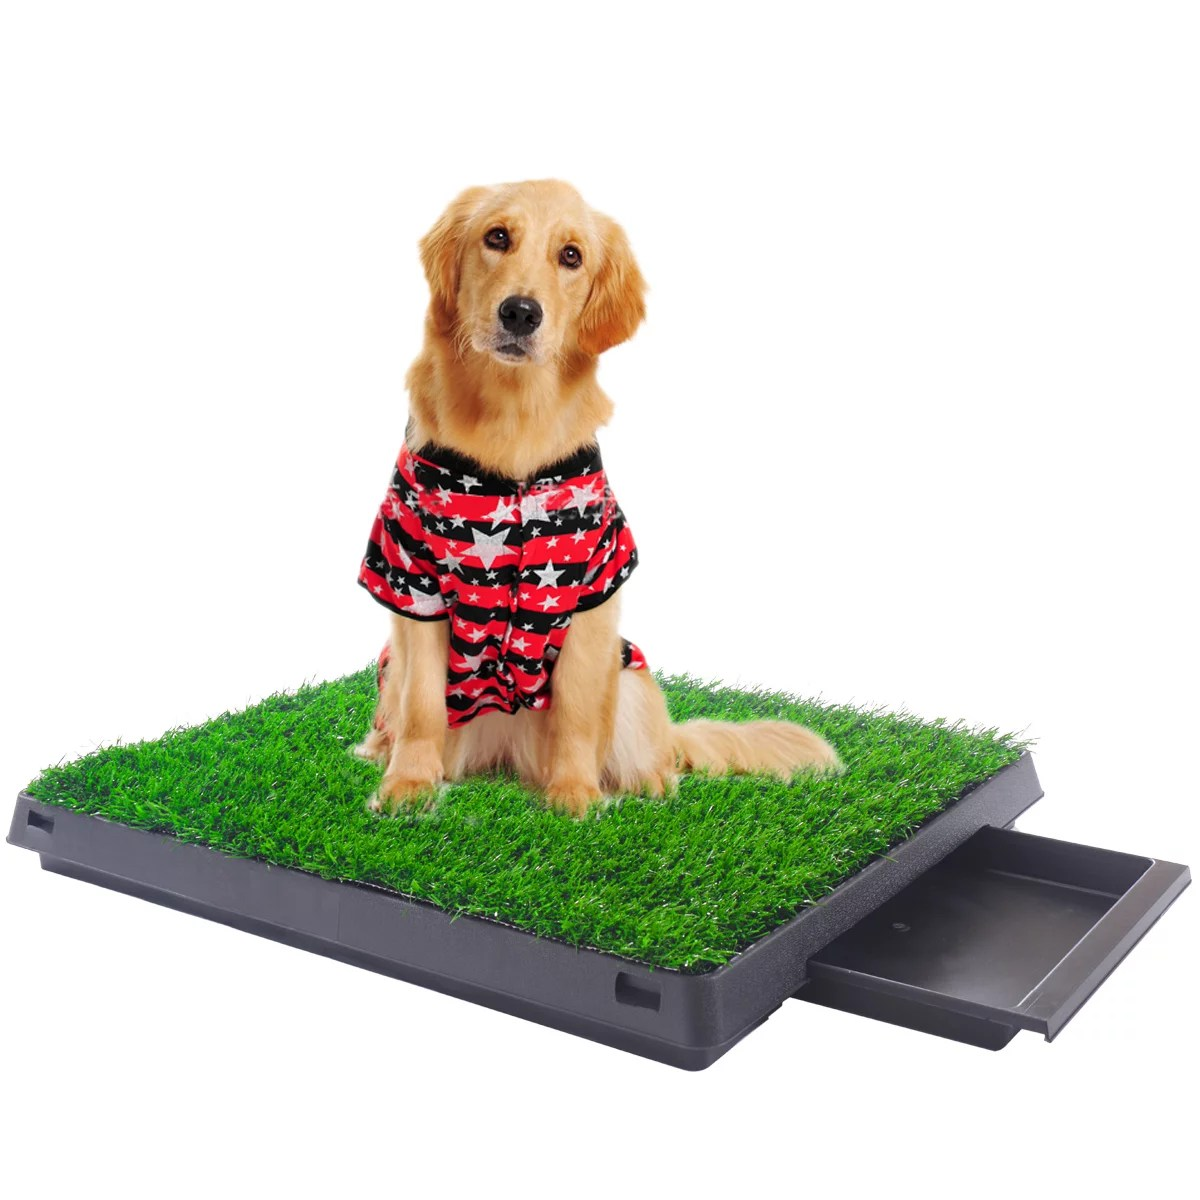 topcobe artificial grass dog potty grass puppy potty trainer 25 x20 fake grass turf for dogs potty training area patio lawn decoration